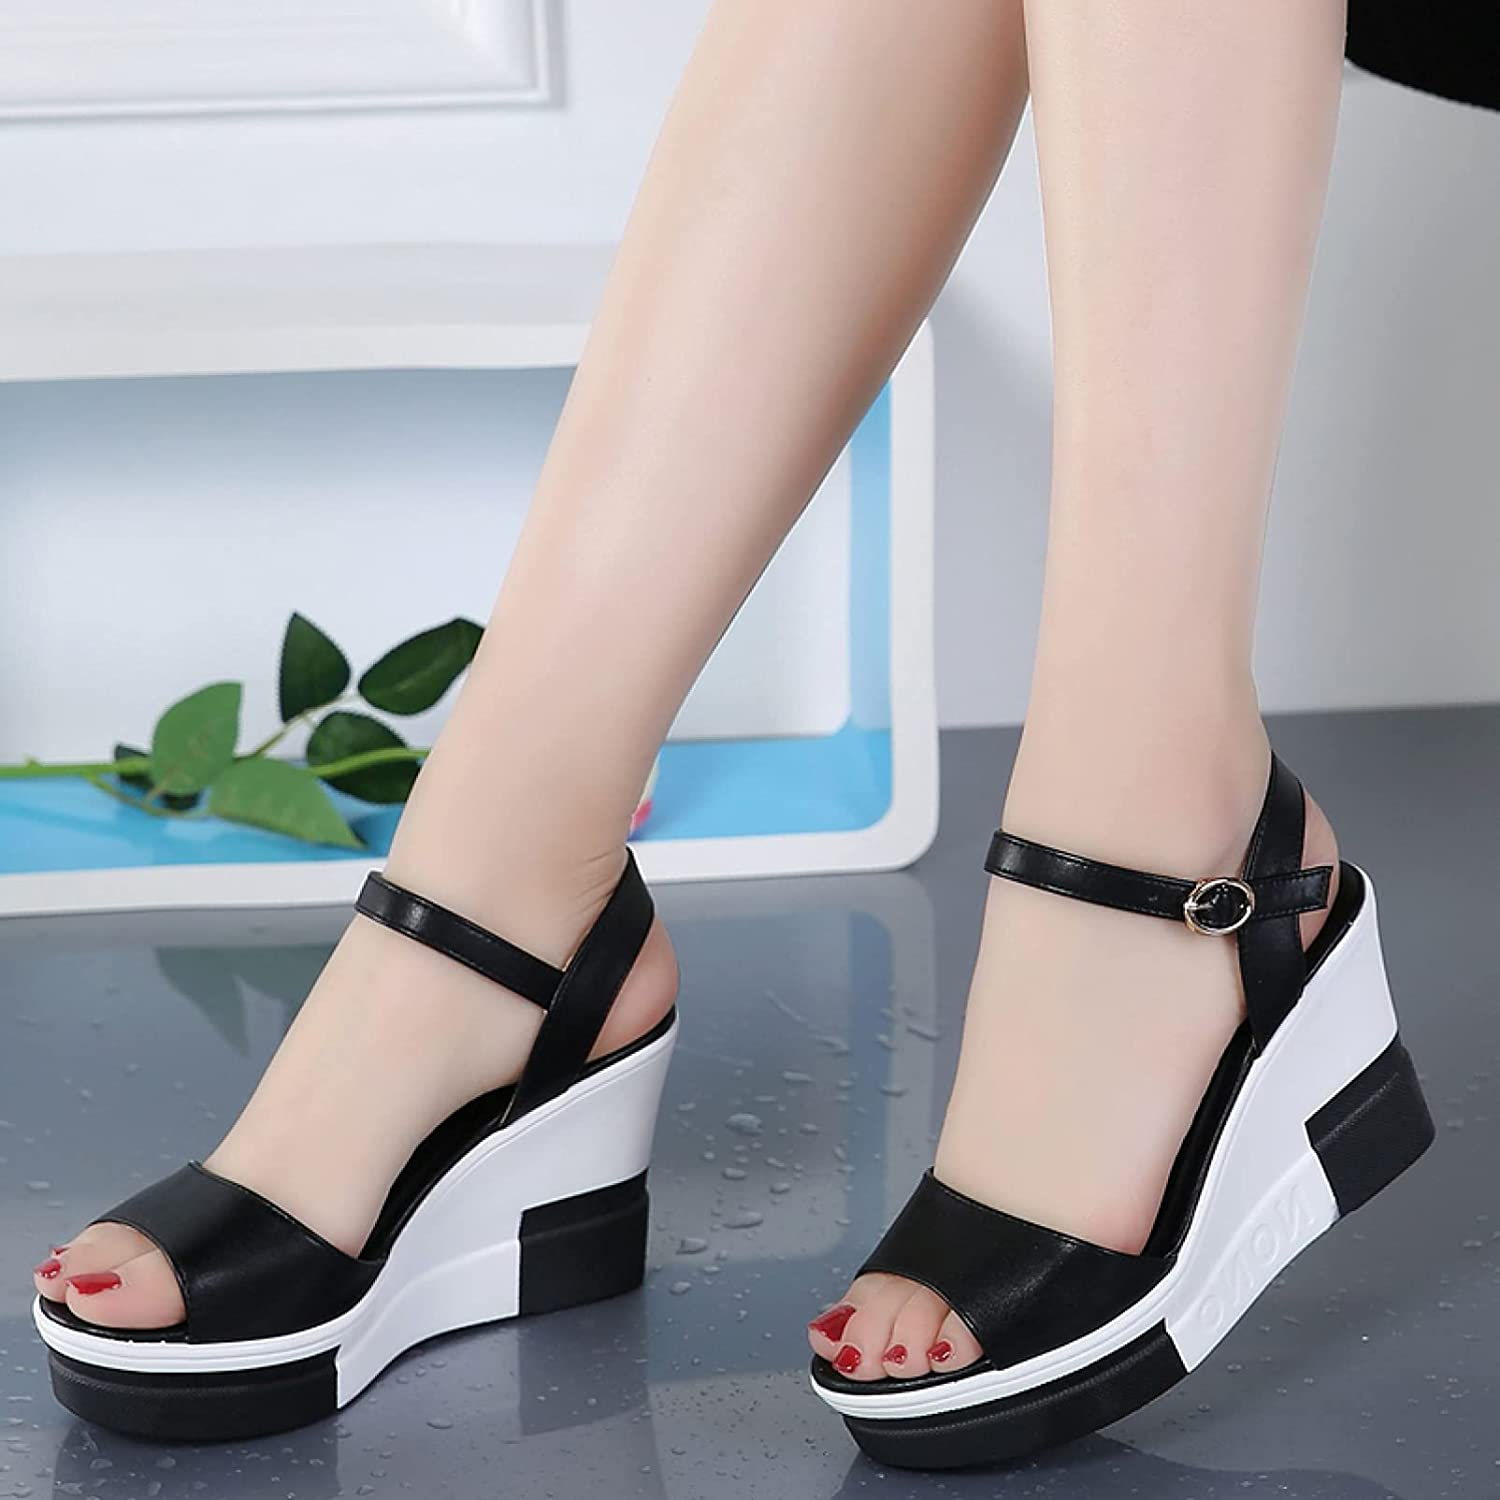 Wedges Shoes for Women, Outdoor Peep Toe Black White Colorblock Anti Skid Stability Comfortable Rest Platform Sandals